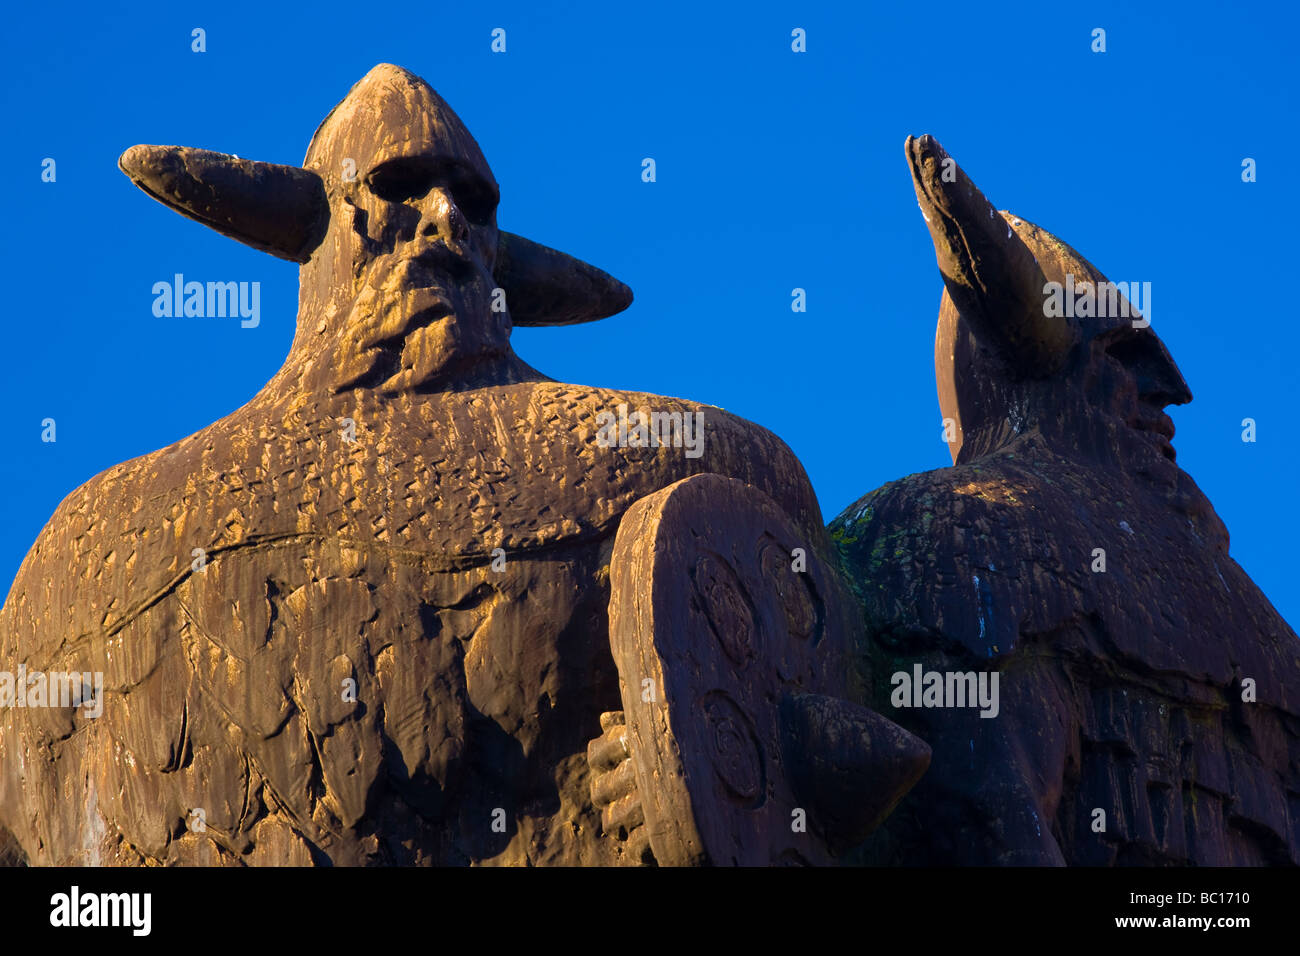 England, Tyne Wear, Jarrow, Viking statue. Raids wereexperienced on mainland britain when it was invaded in AD79 - Stock Image